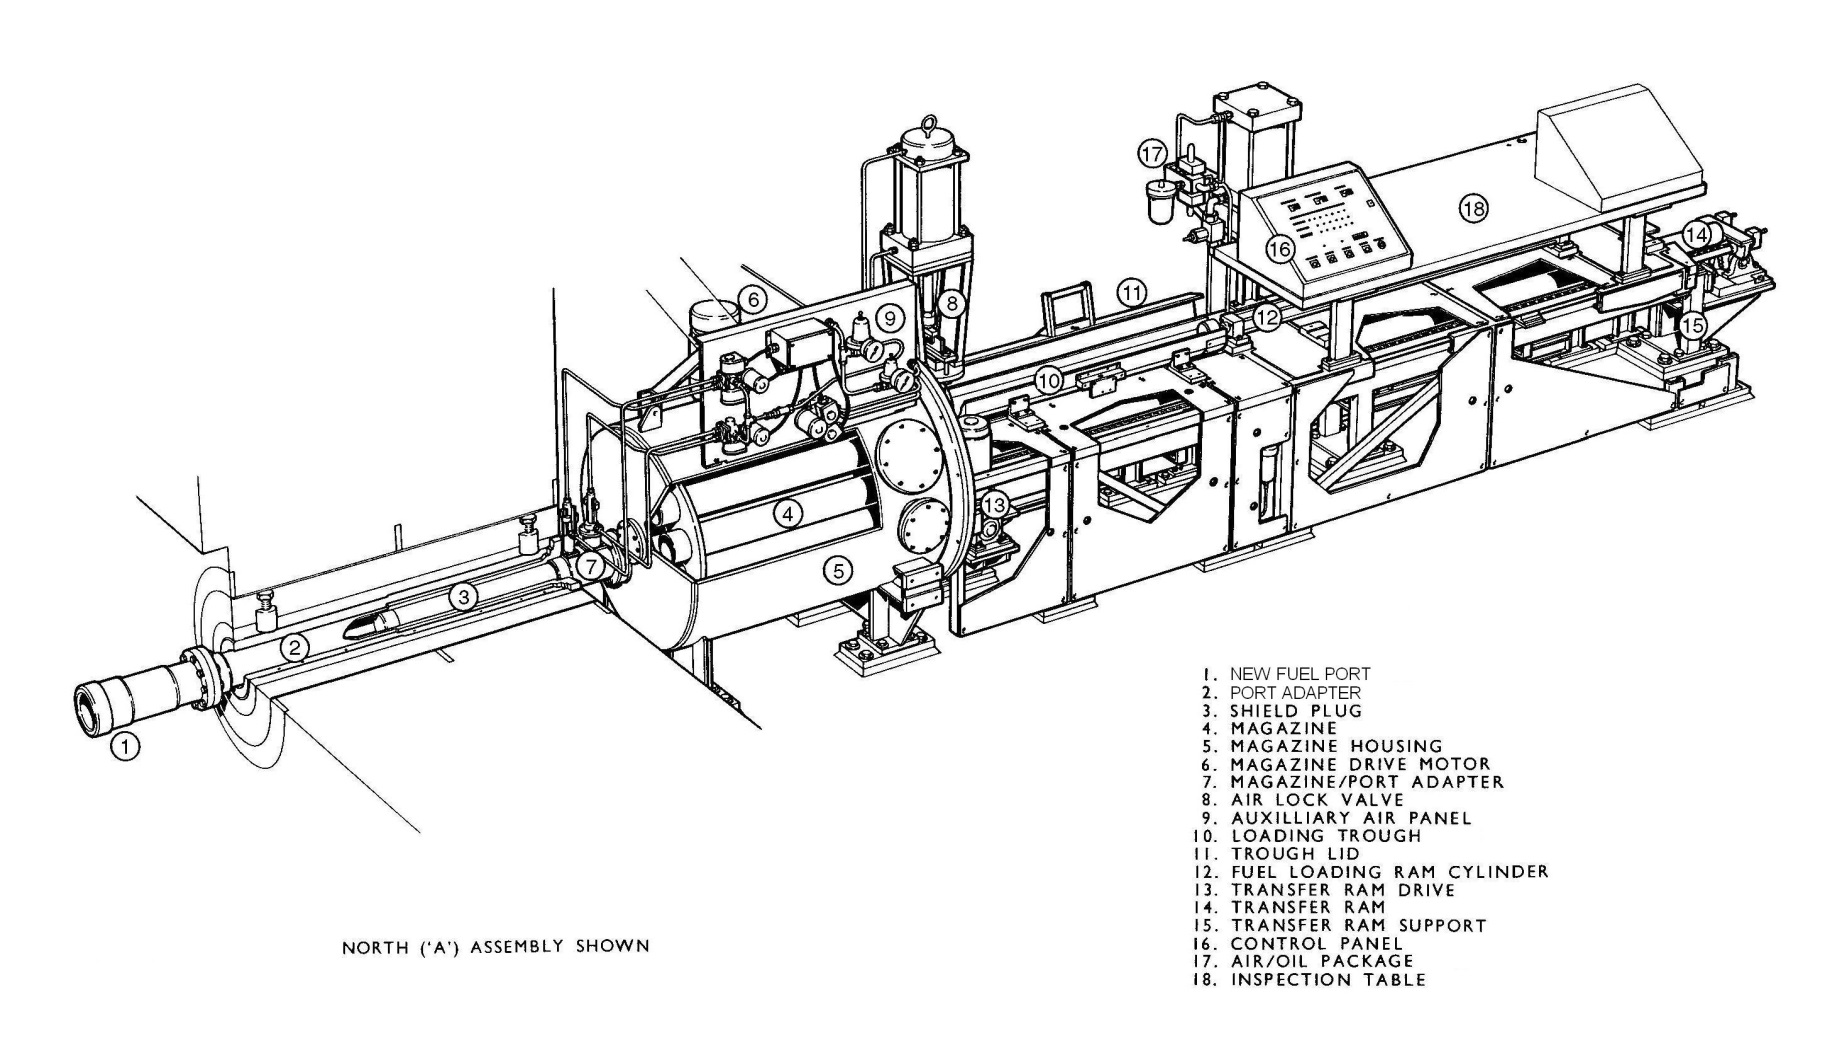 Image Library 1104 X 764 99 Kb Gif Exploded View Parts Diagram Chapter20 Image004